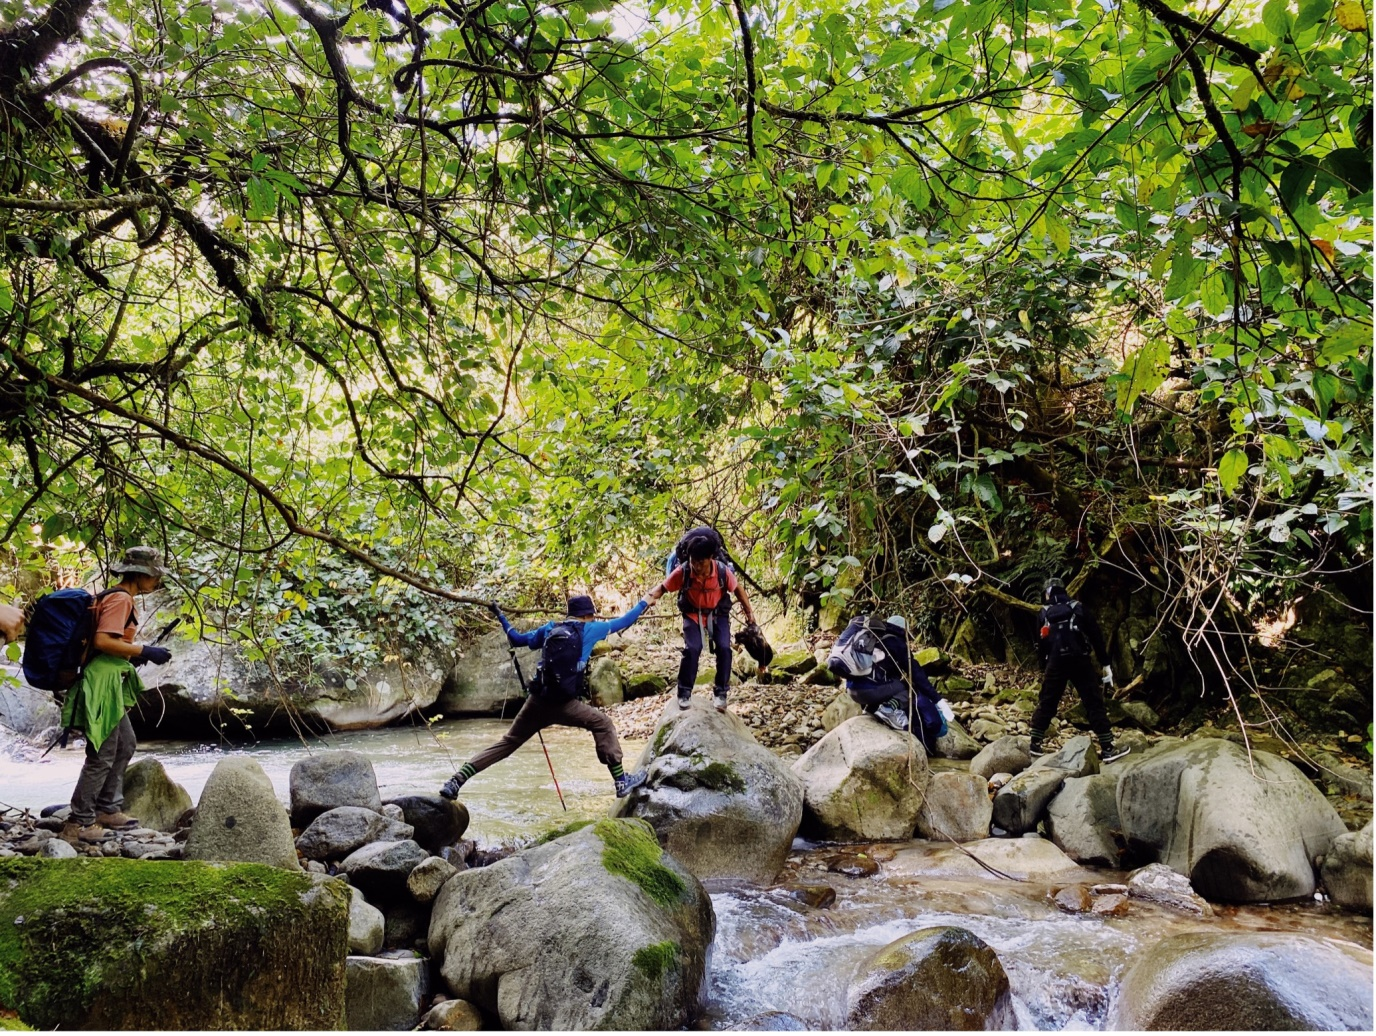 The guide helps the tourists cross the stream.  Photo: Hoang Bac